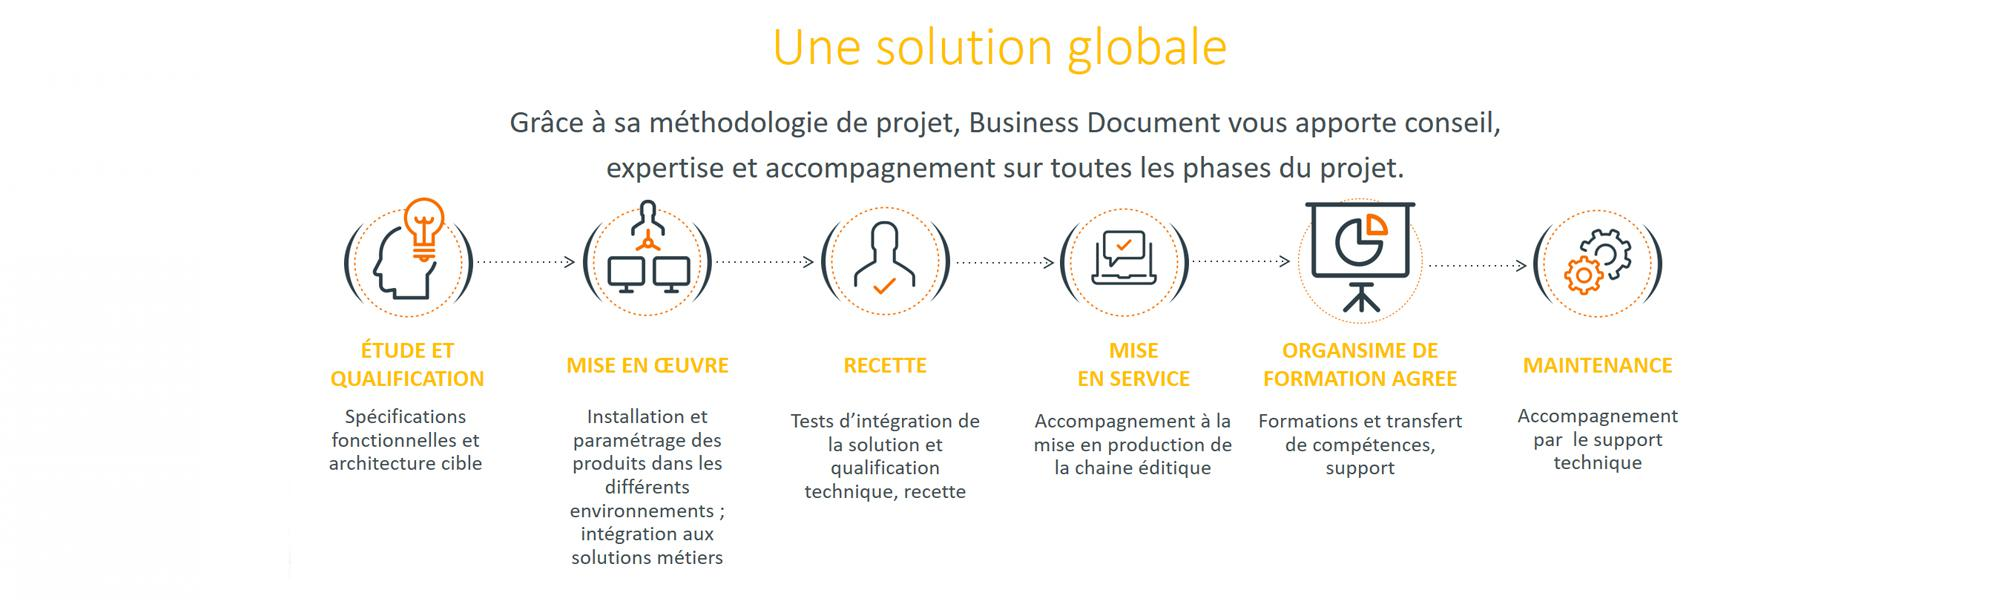 Une solution globale